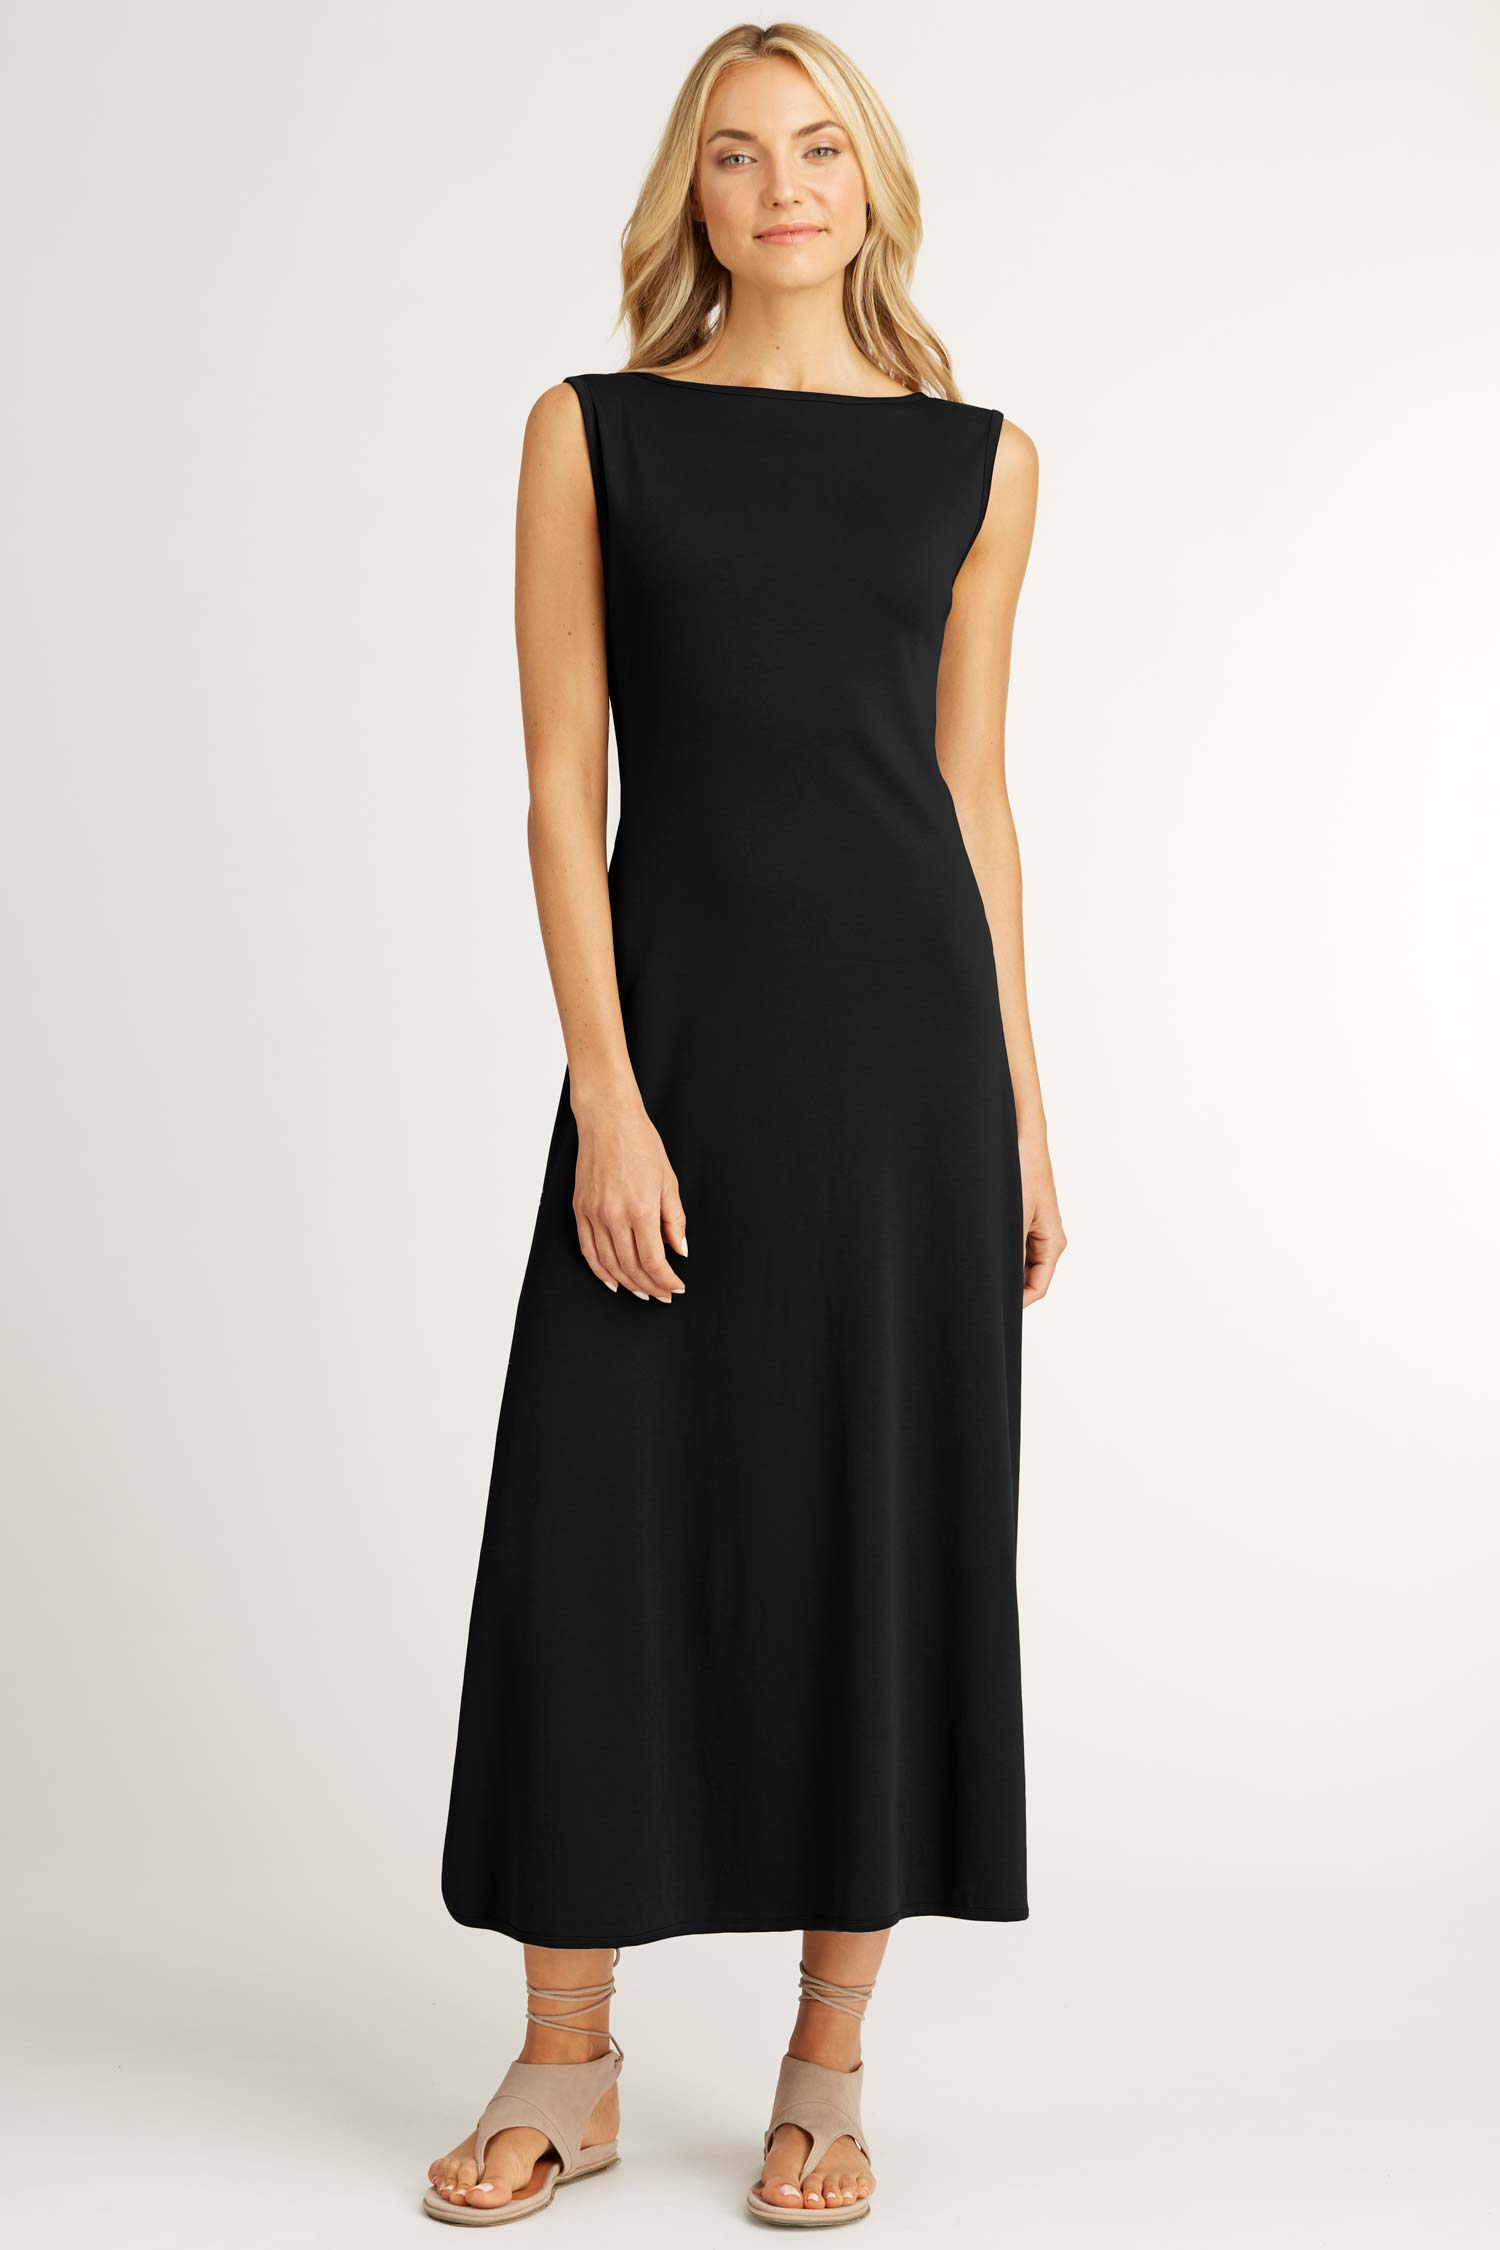 Womens Boatneck Maxi Dress in Black | Slow Fashion